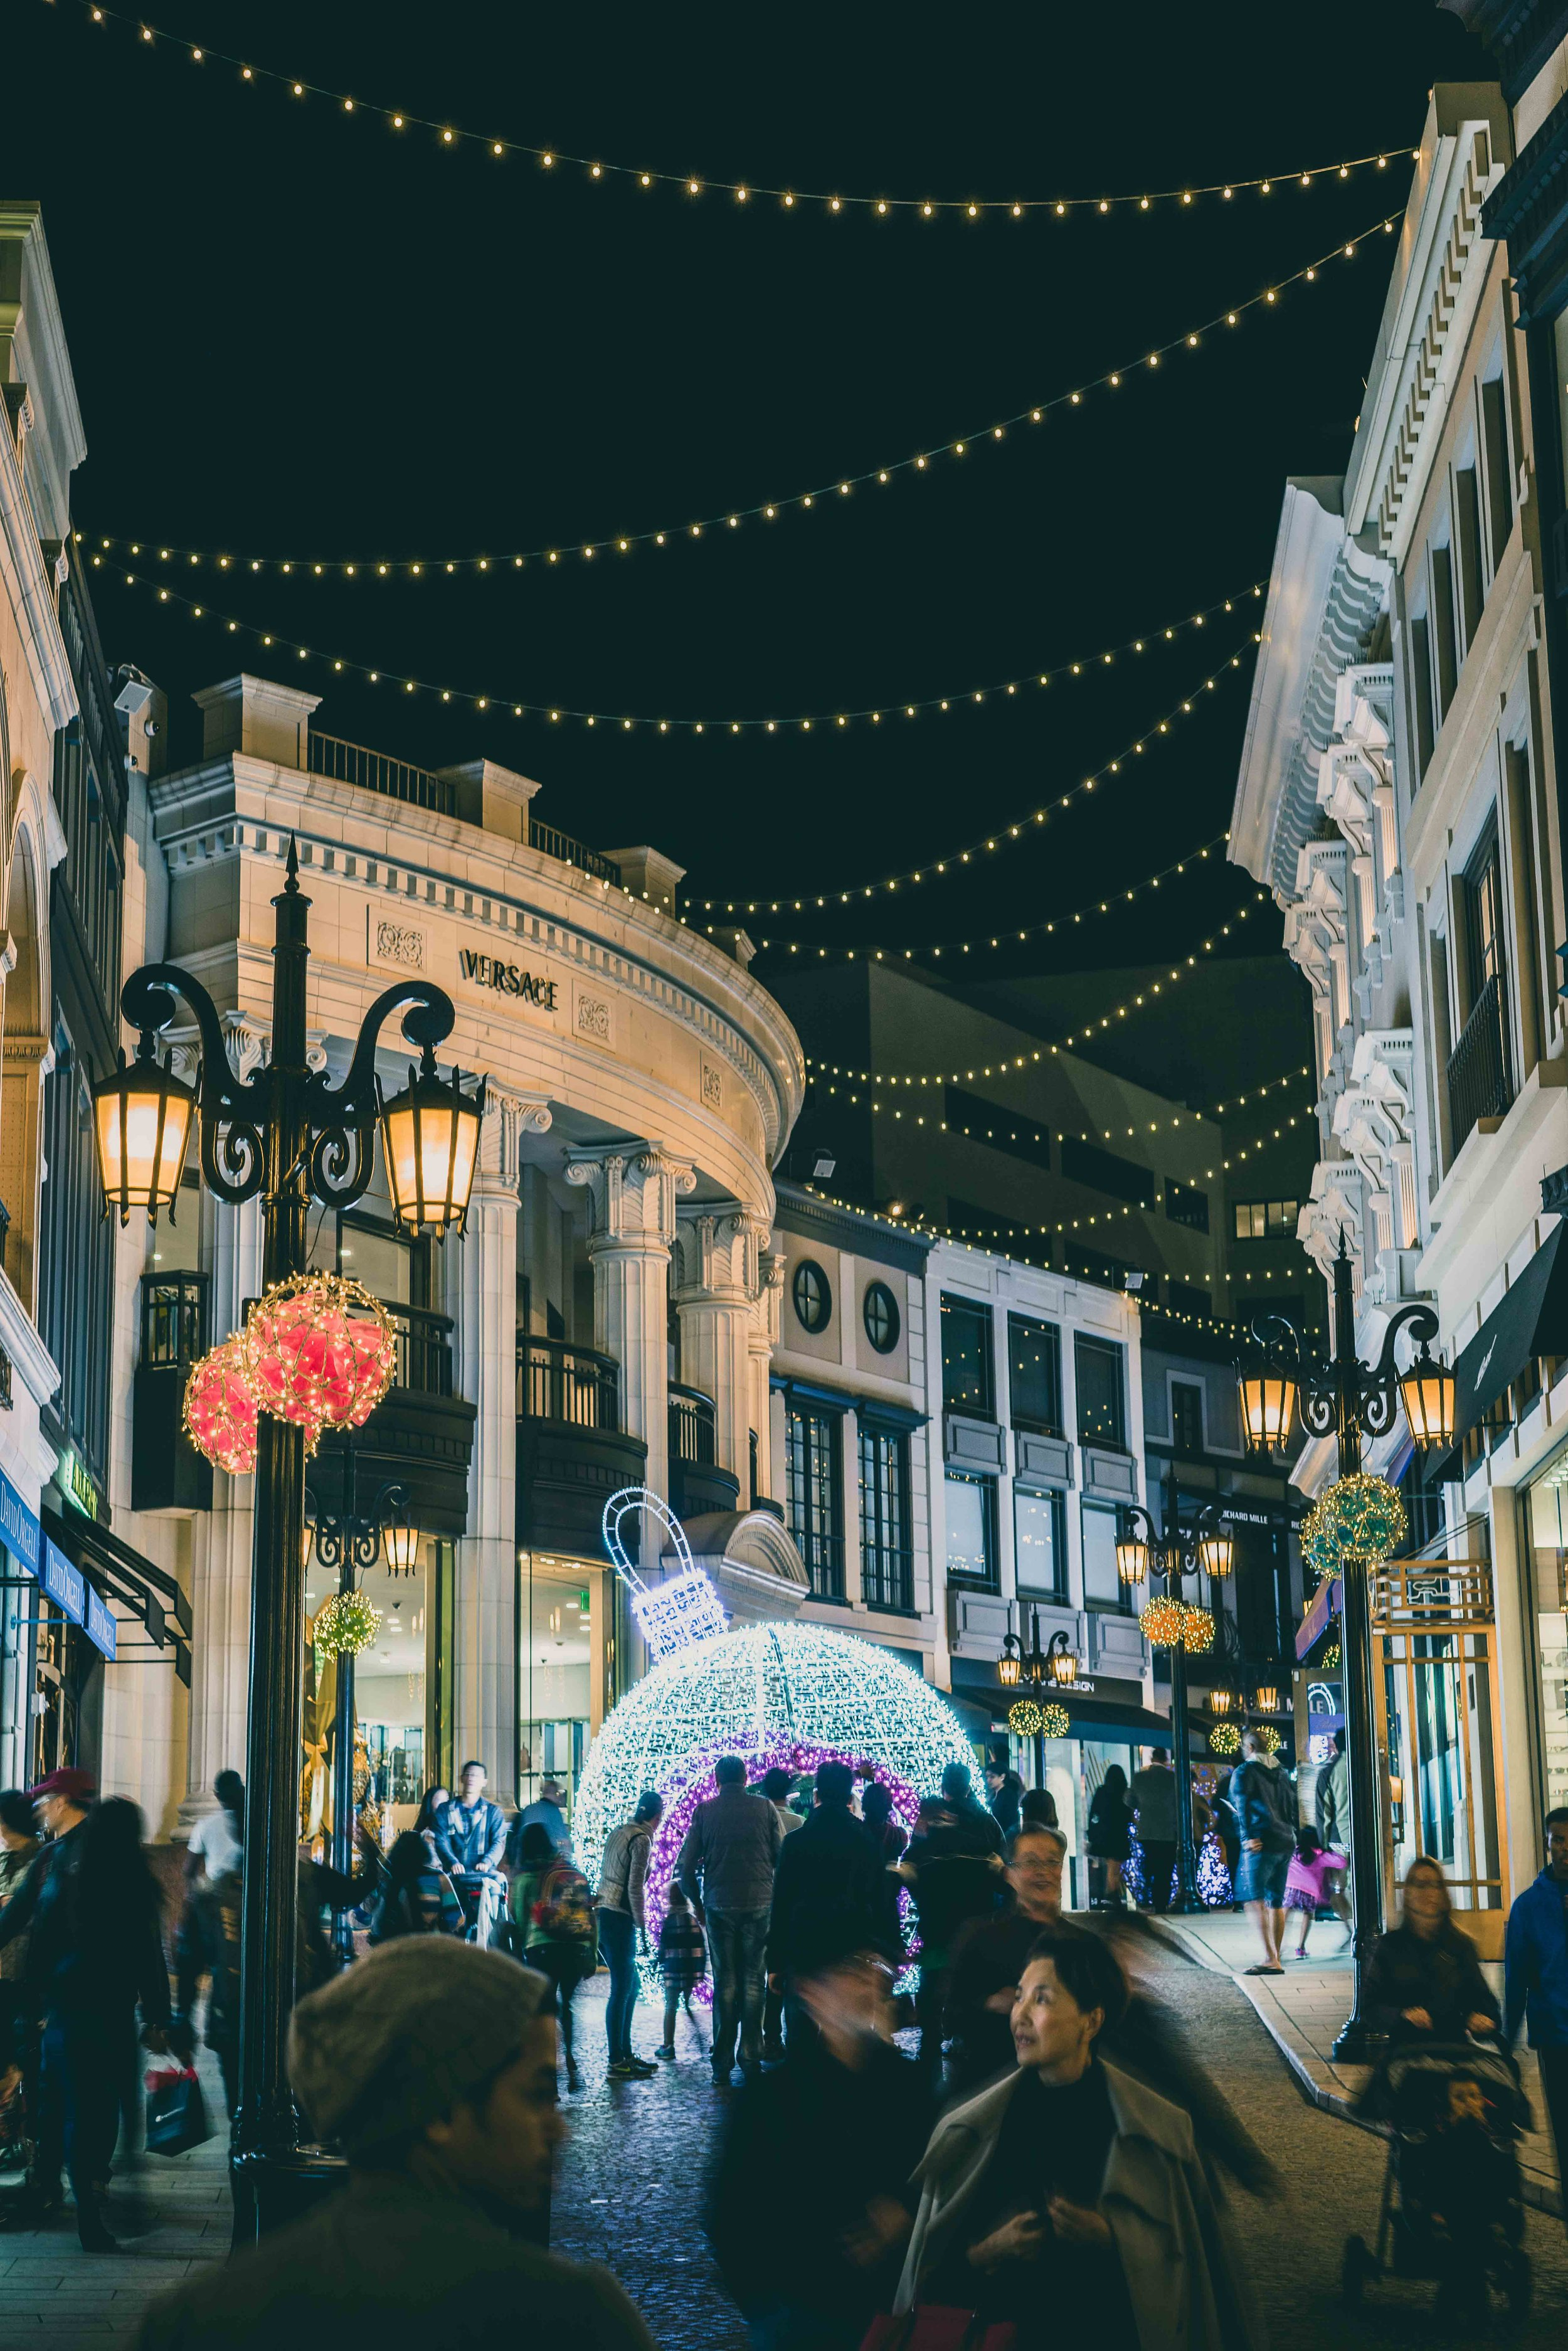 Rodeo Drive, Los Angeles   The lights, cars, people and buzz of Rodeo Drive had me all excited, firing my camera at everything. This was a favourite, taken in the days leading up to Christmas. Its all happening in on Rodeo Drive.